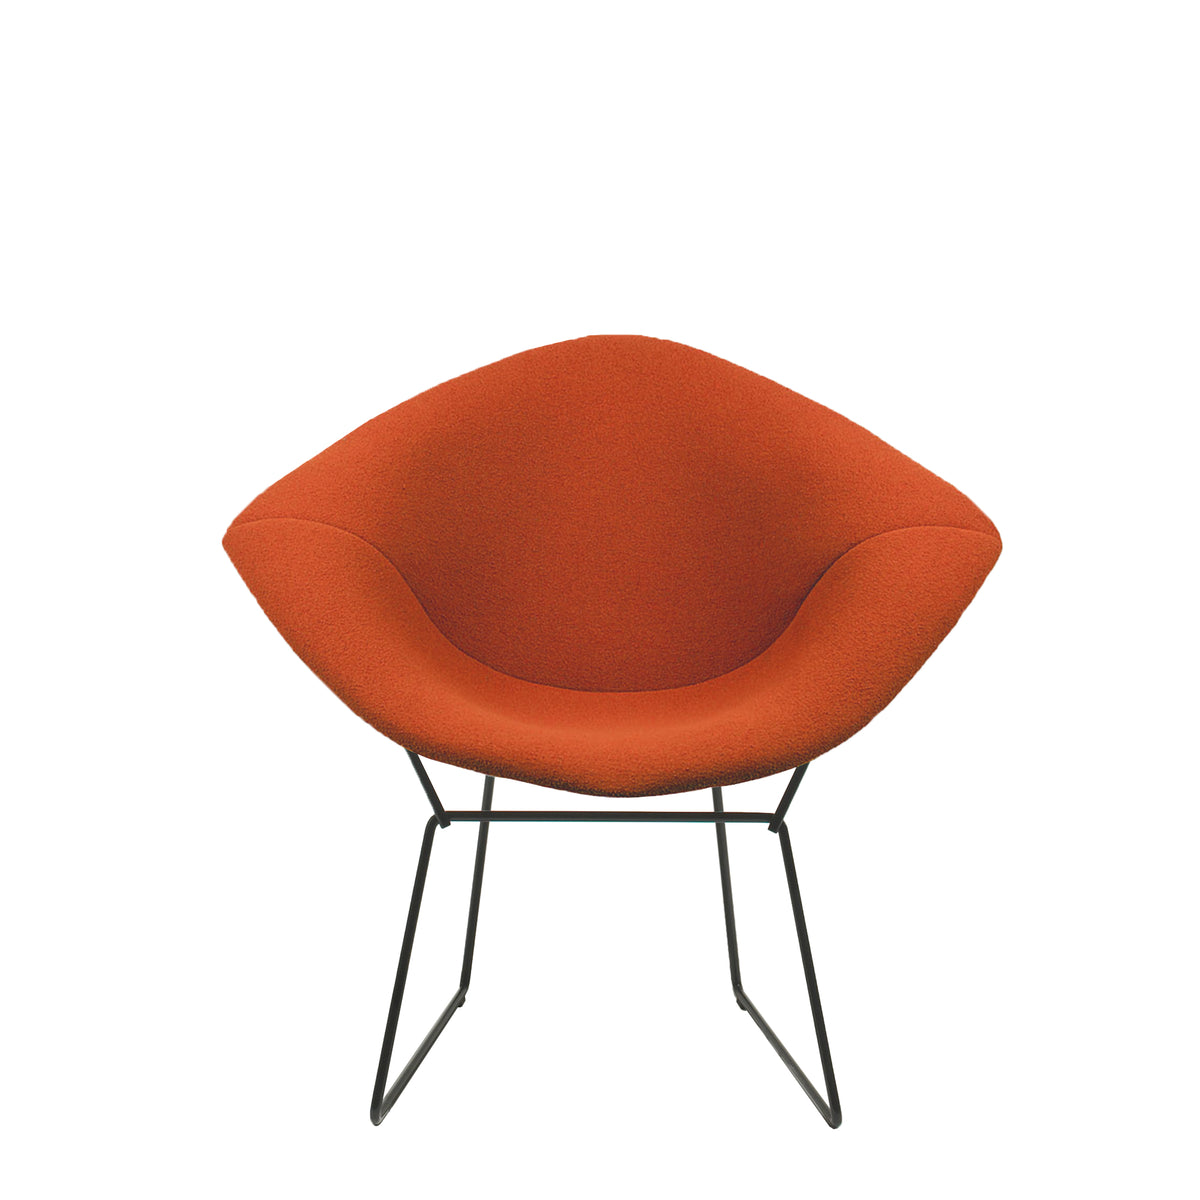 Knoll Office Bertoia Diamond Lounge Chair Upholstered